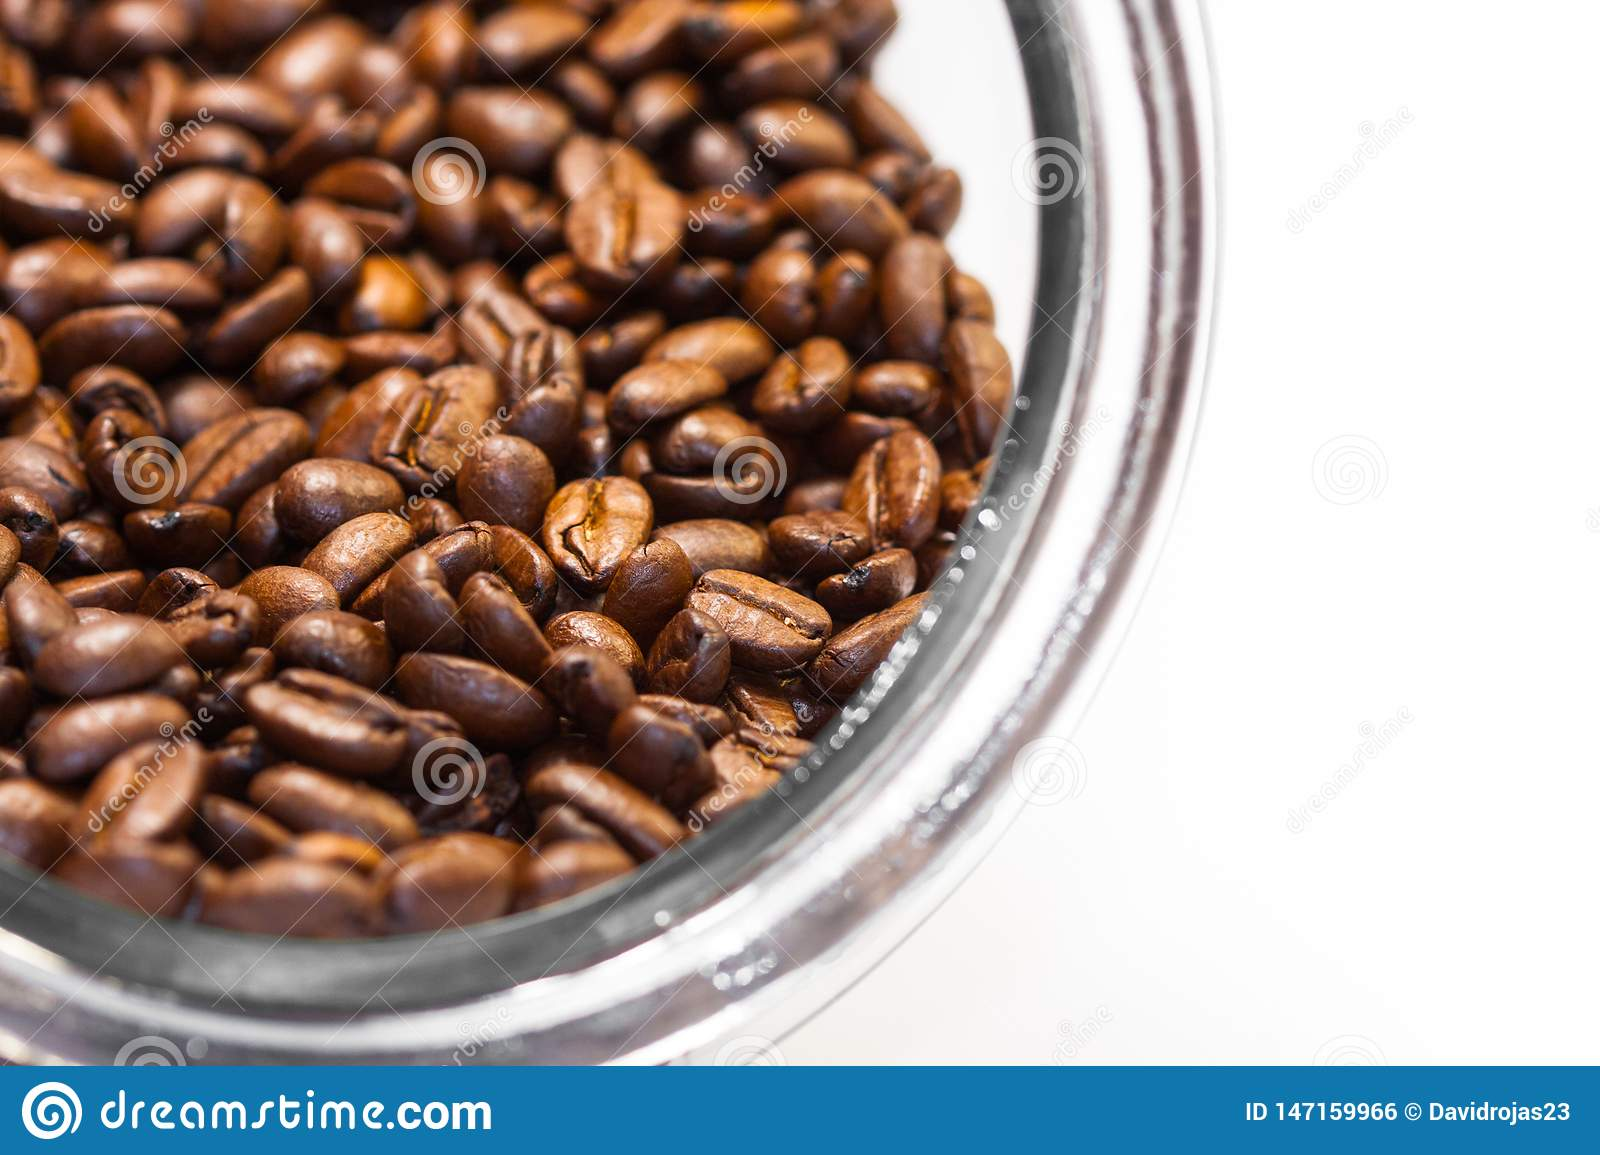 Fresh and ground roasted coffee beans from the coffee plant inside a cylindrical glass jar